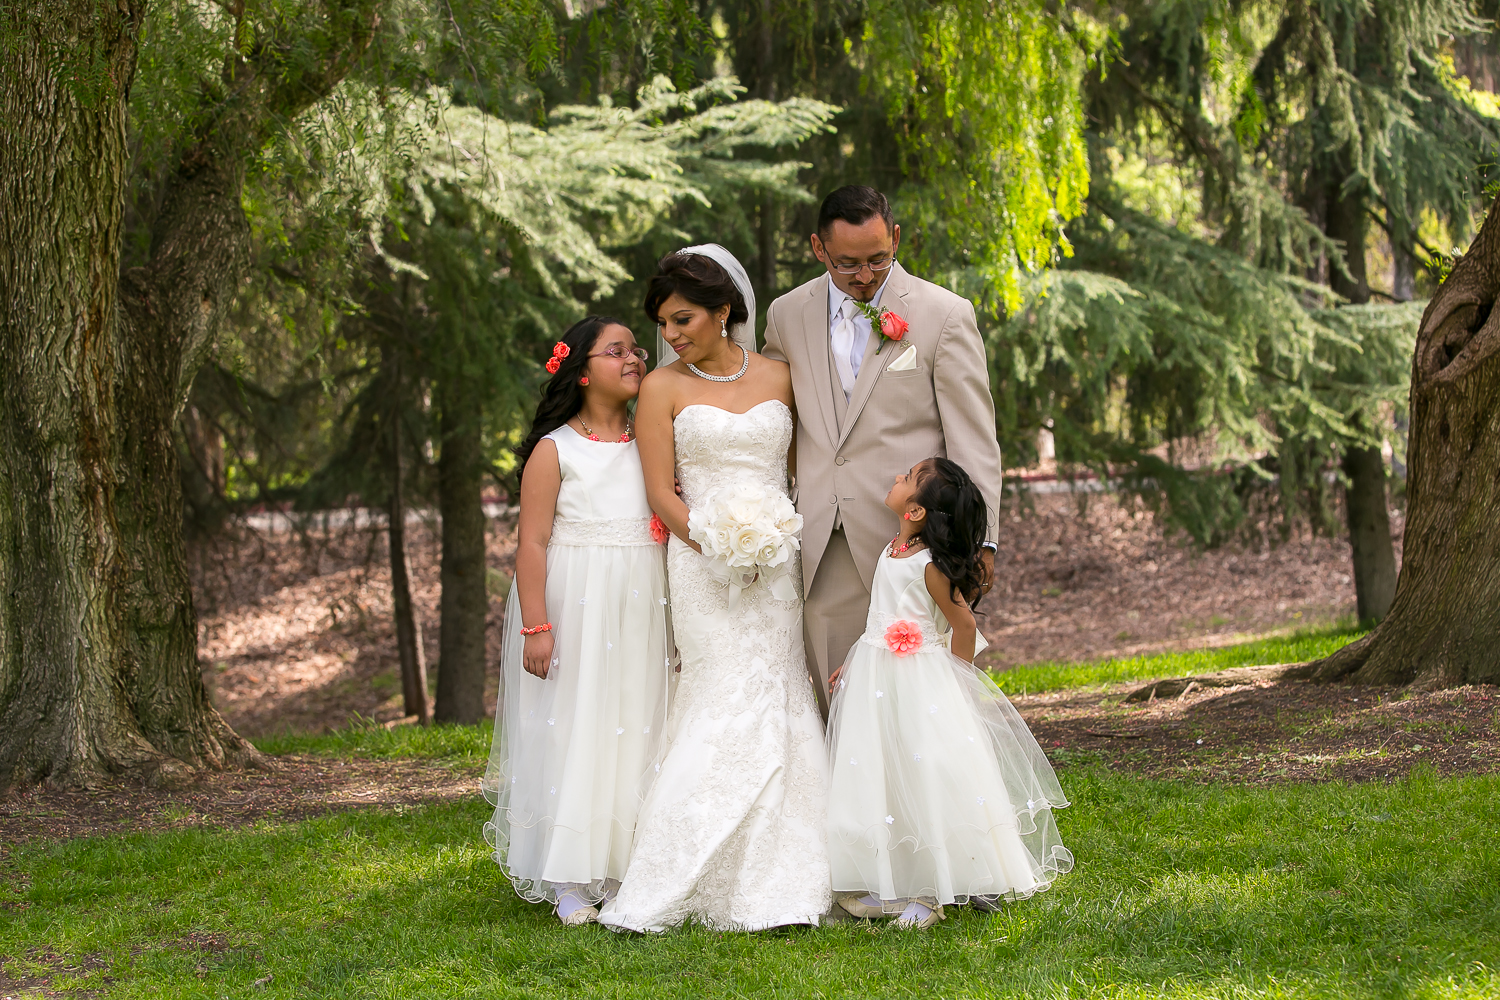 los angeles wedding, love, chris holt photography, happy, mariachi, mexican wedding, bridal portraits, family portraits